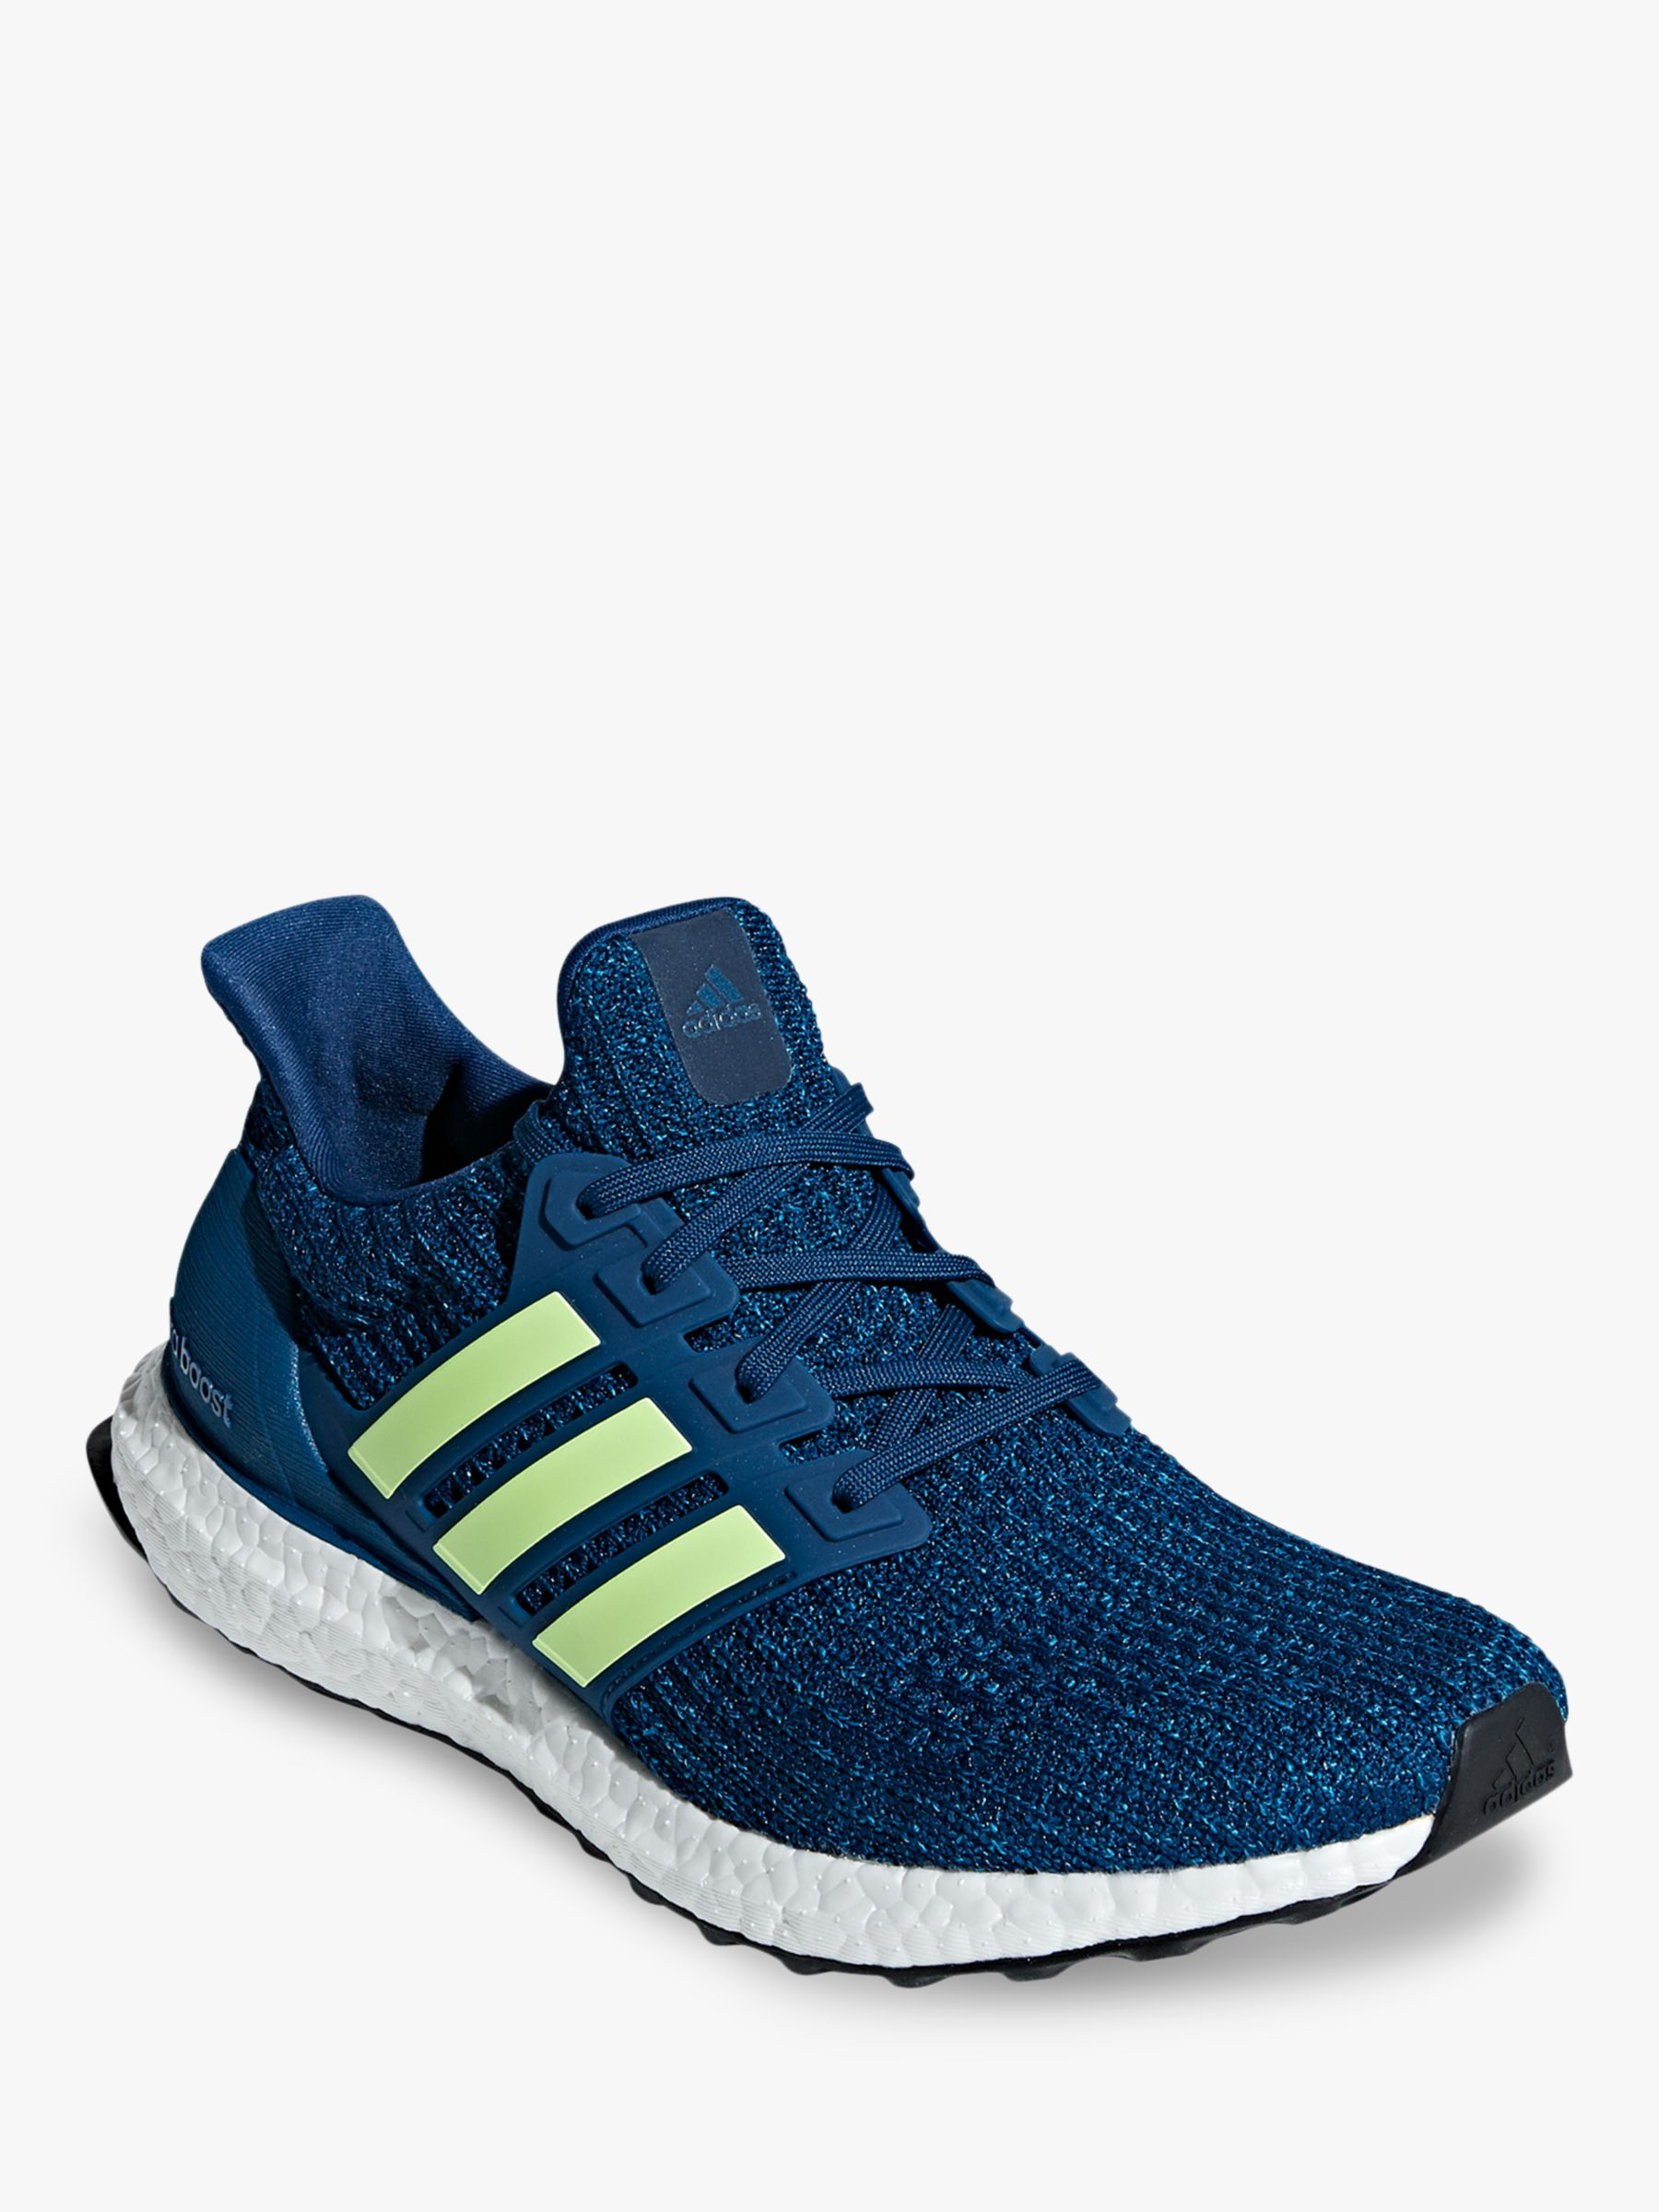 cheap adidas running trainers off 58% - www.usushimd.com